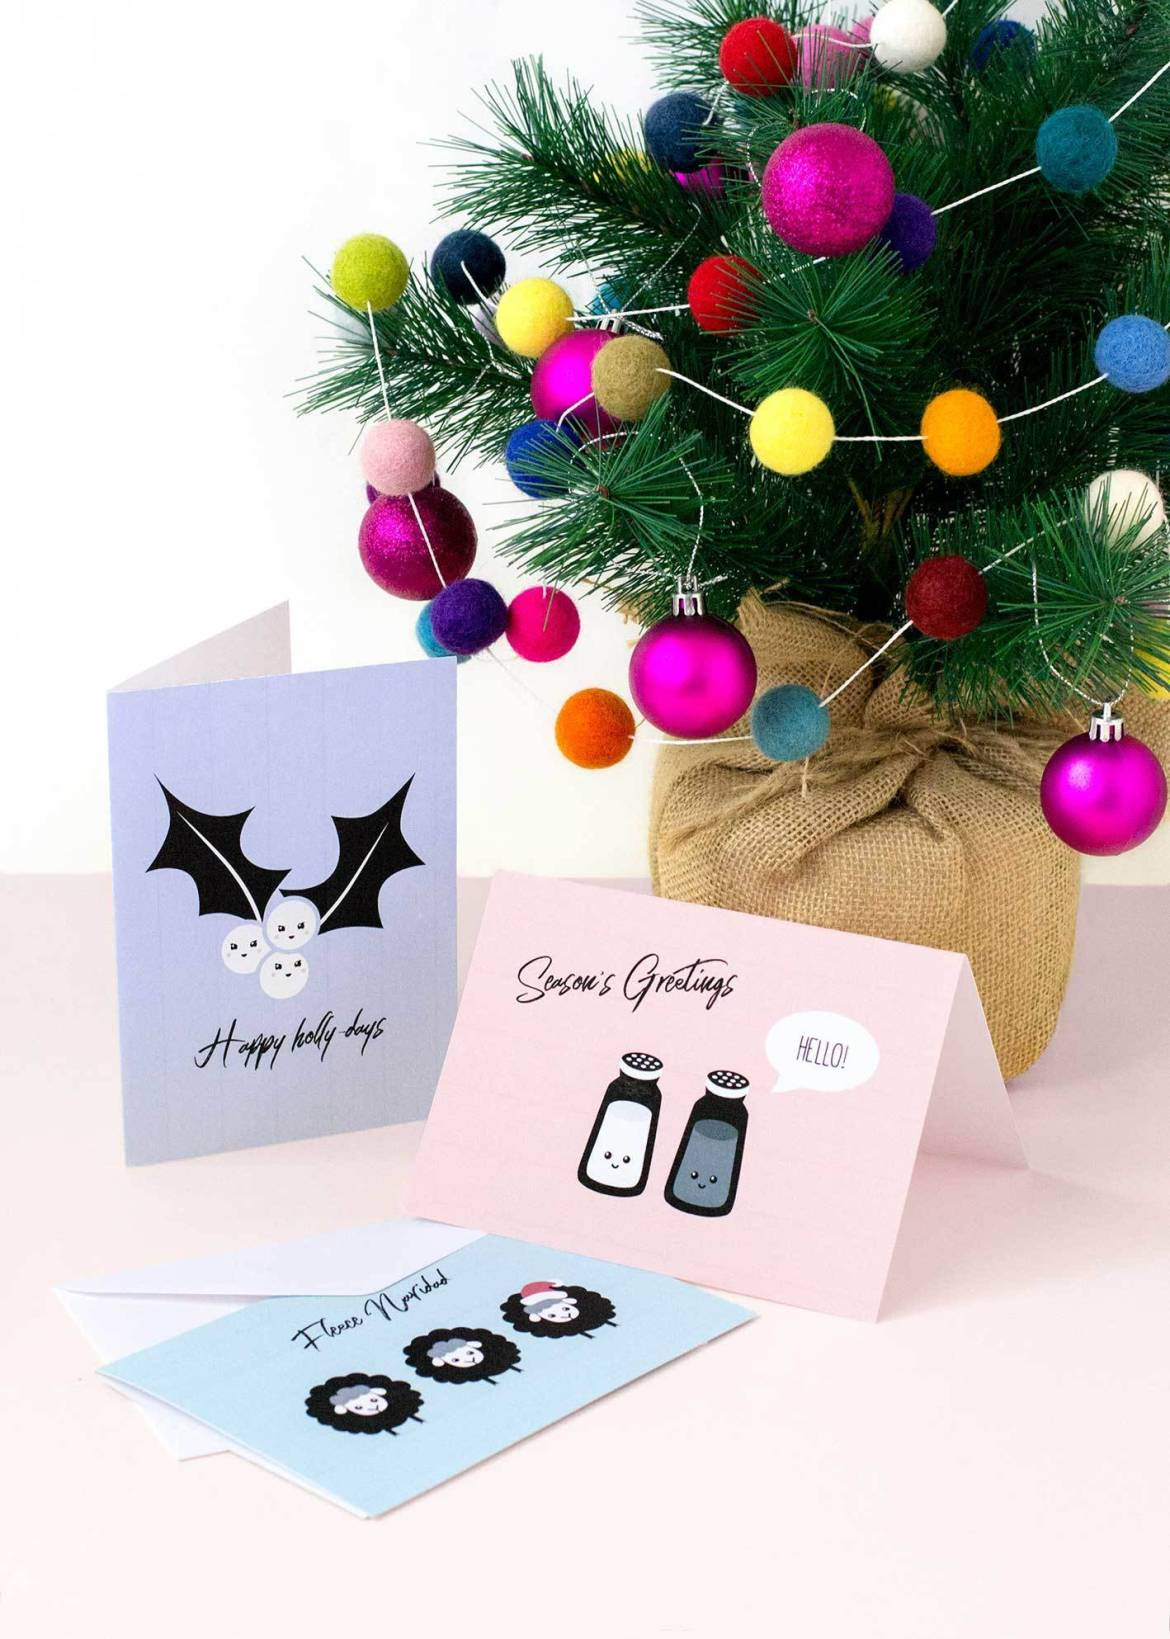 Punny Christmas cards with free printable!